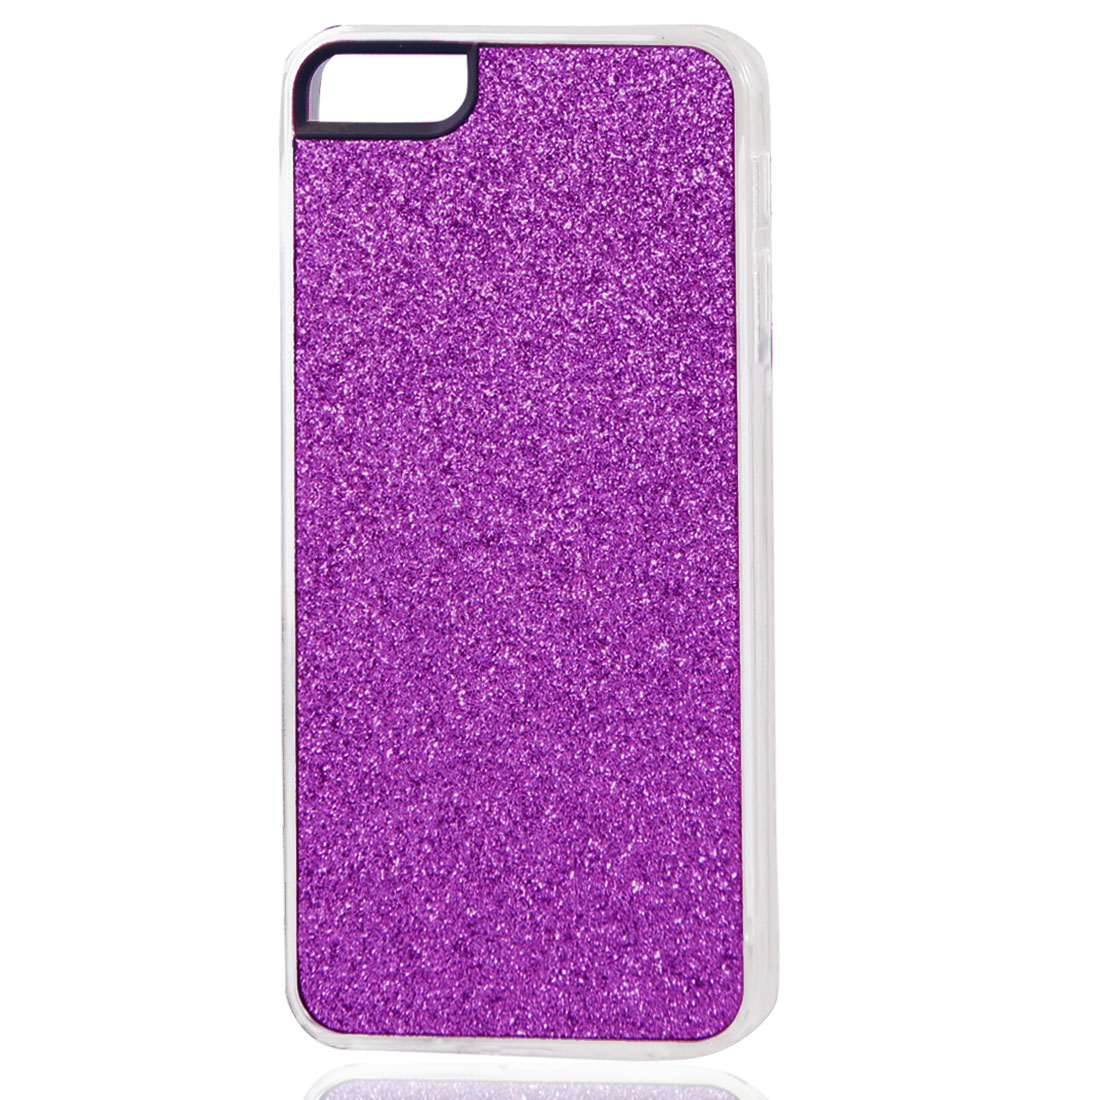 Magenta Glitter Glittery Sparkly Bling Hard Back Case Cover for iPhone 5 5G